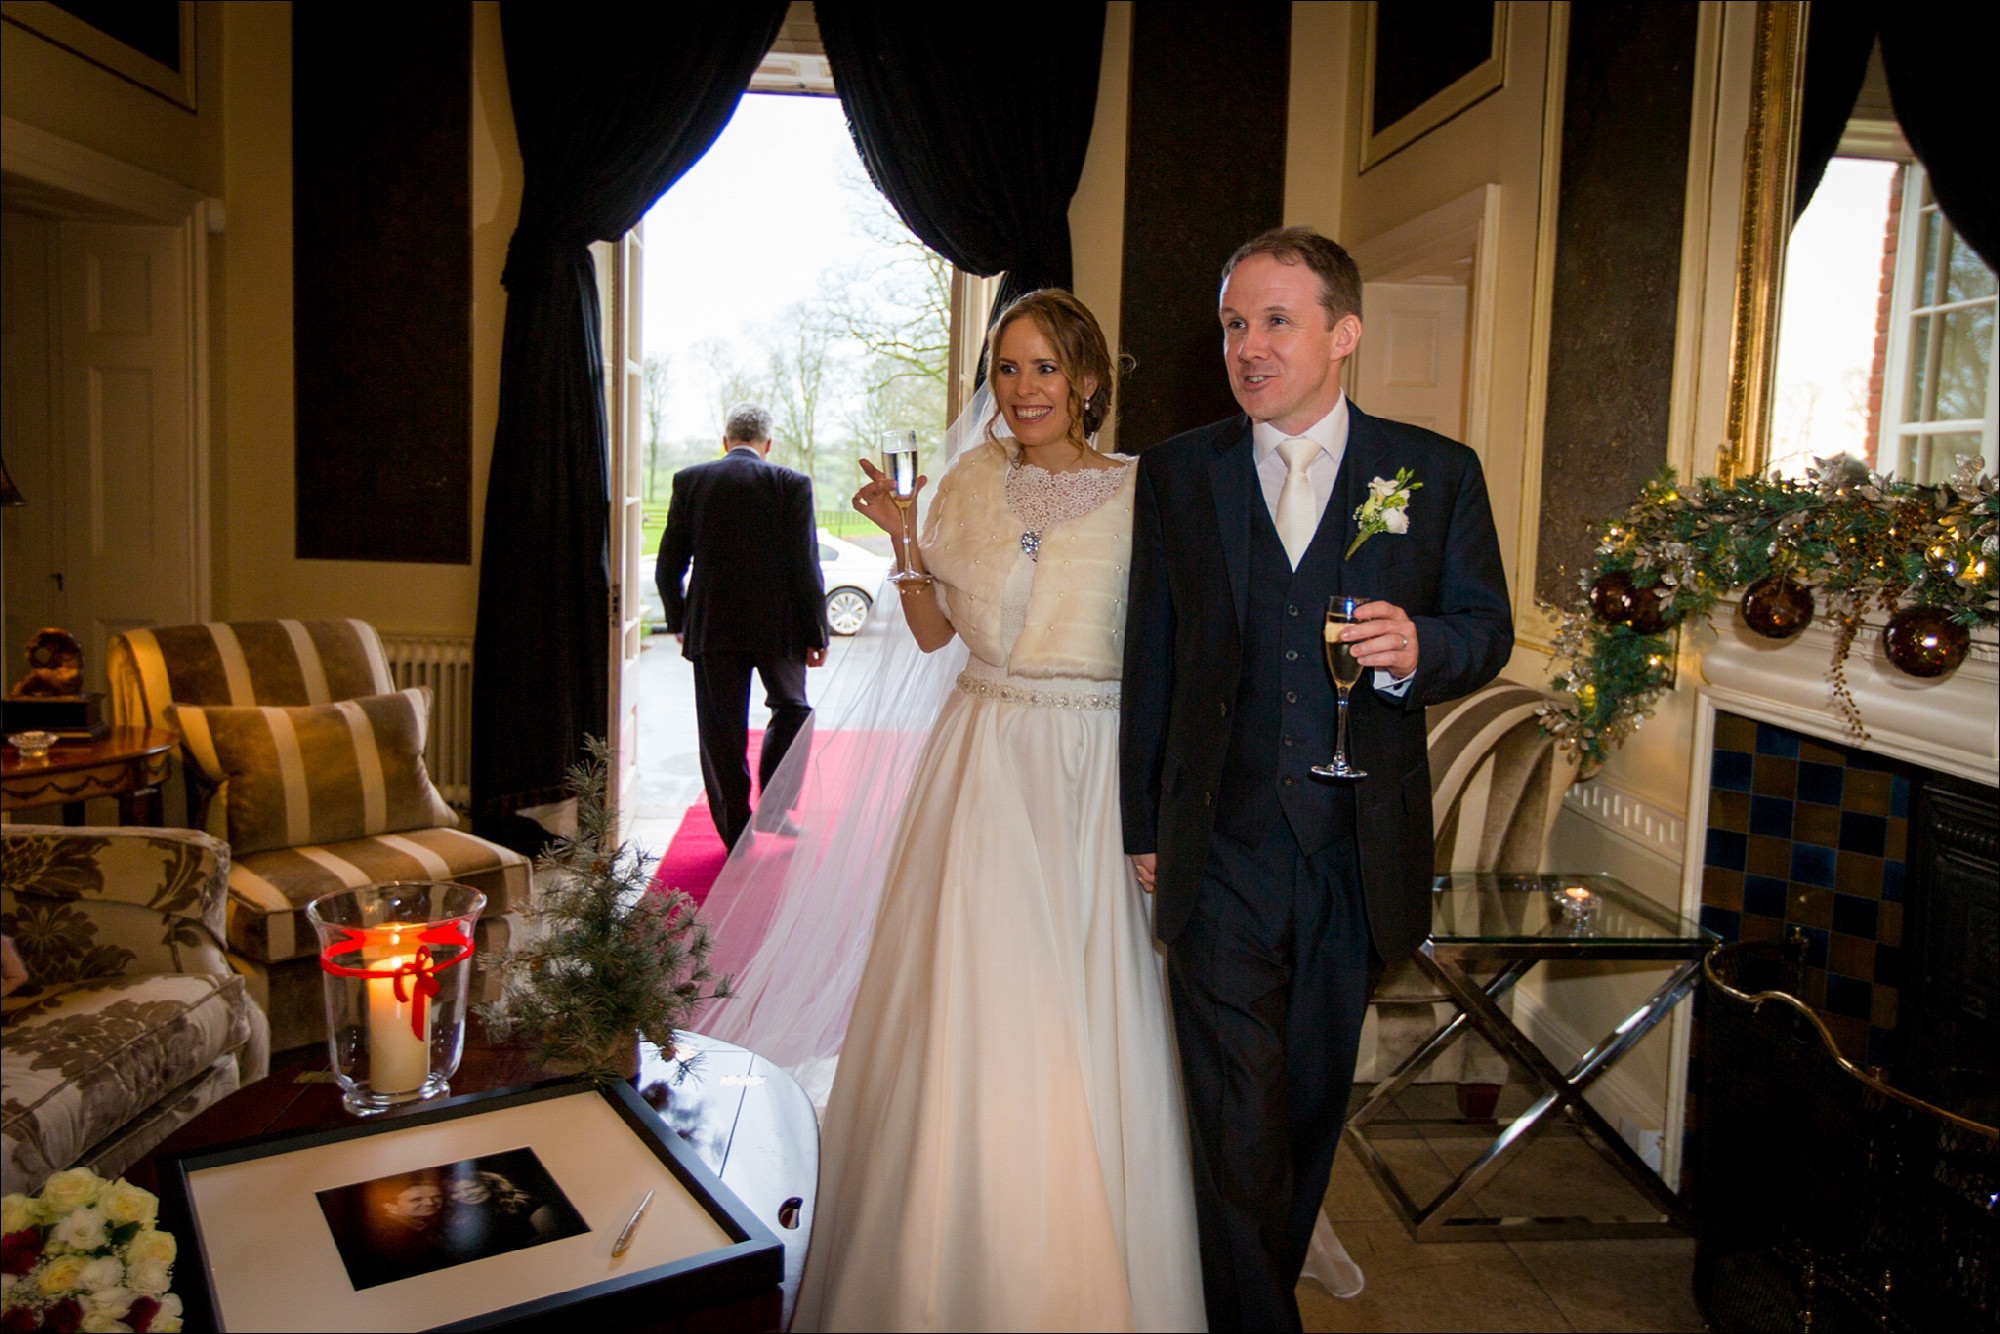 dublin wedding photographer david duignan photography tankardstown weddings slane rathfeigh church ireland 0030